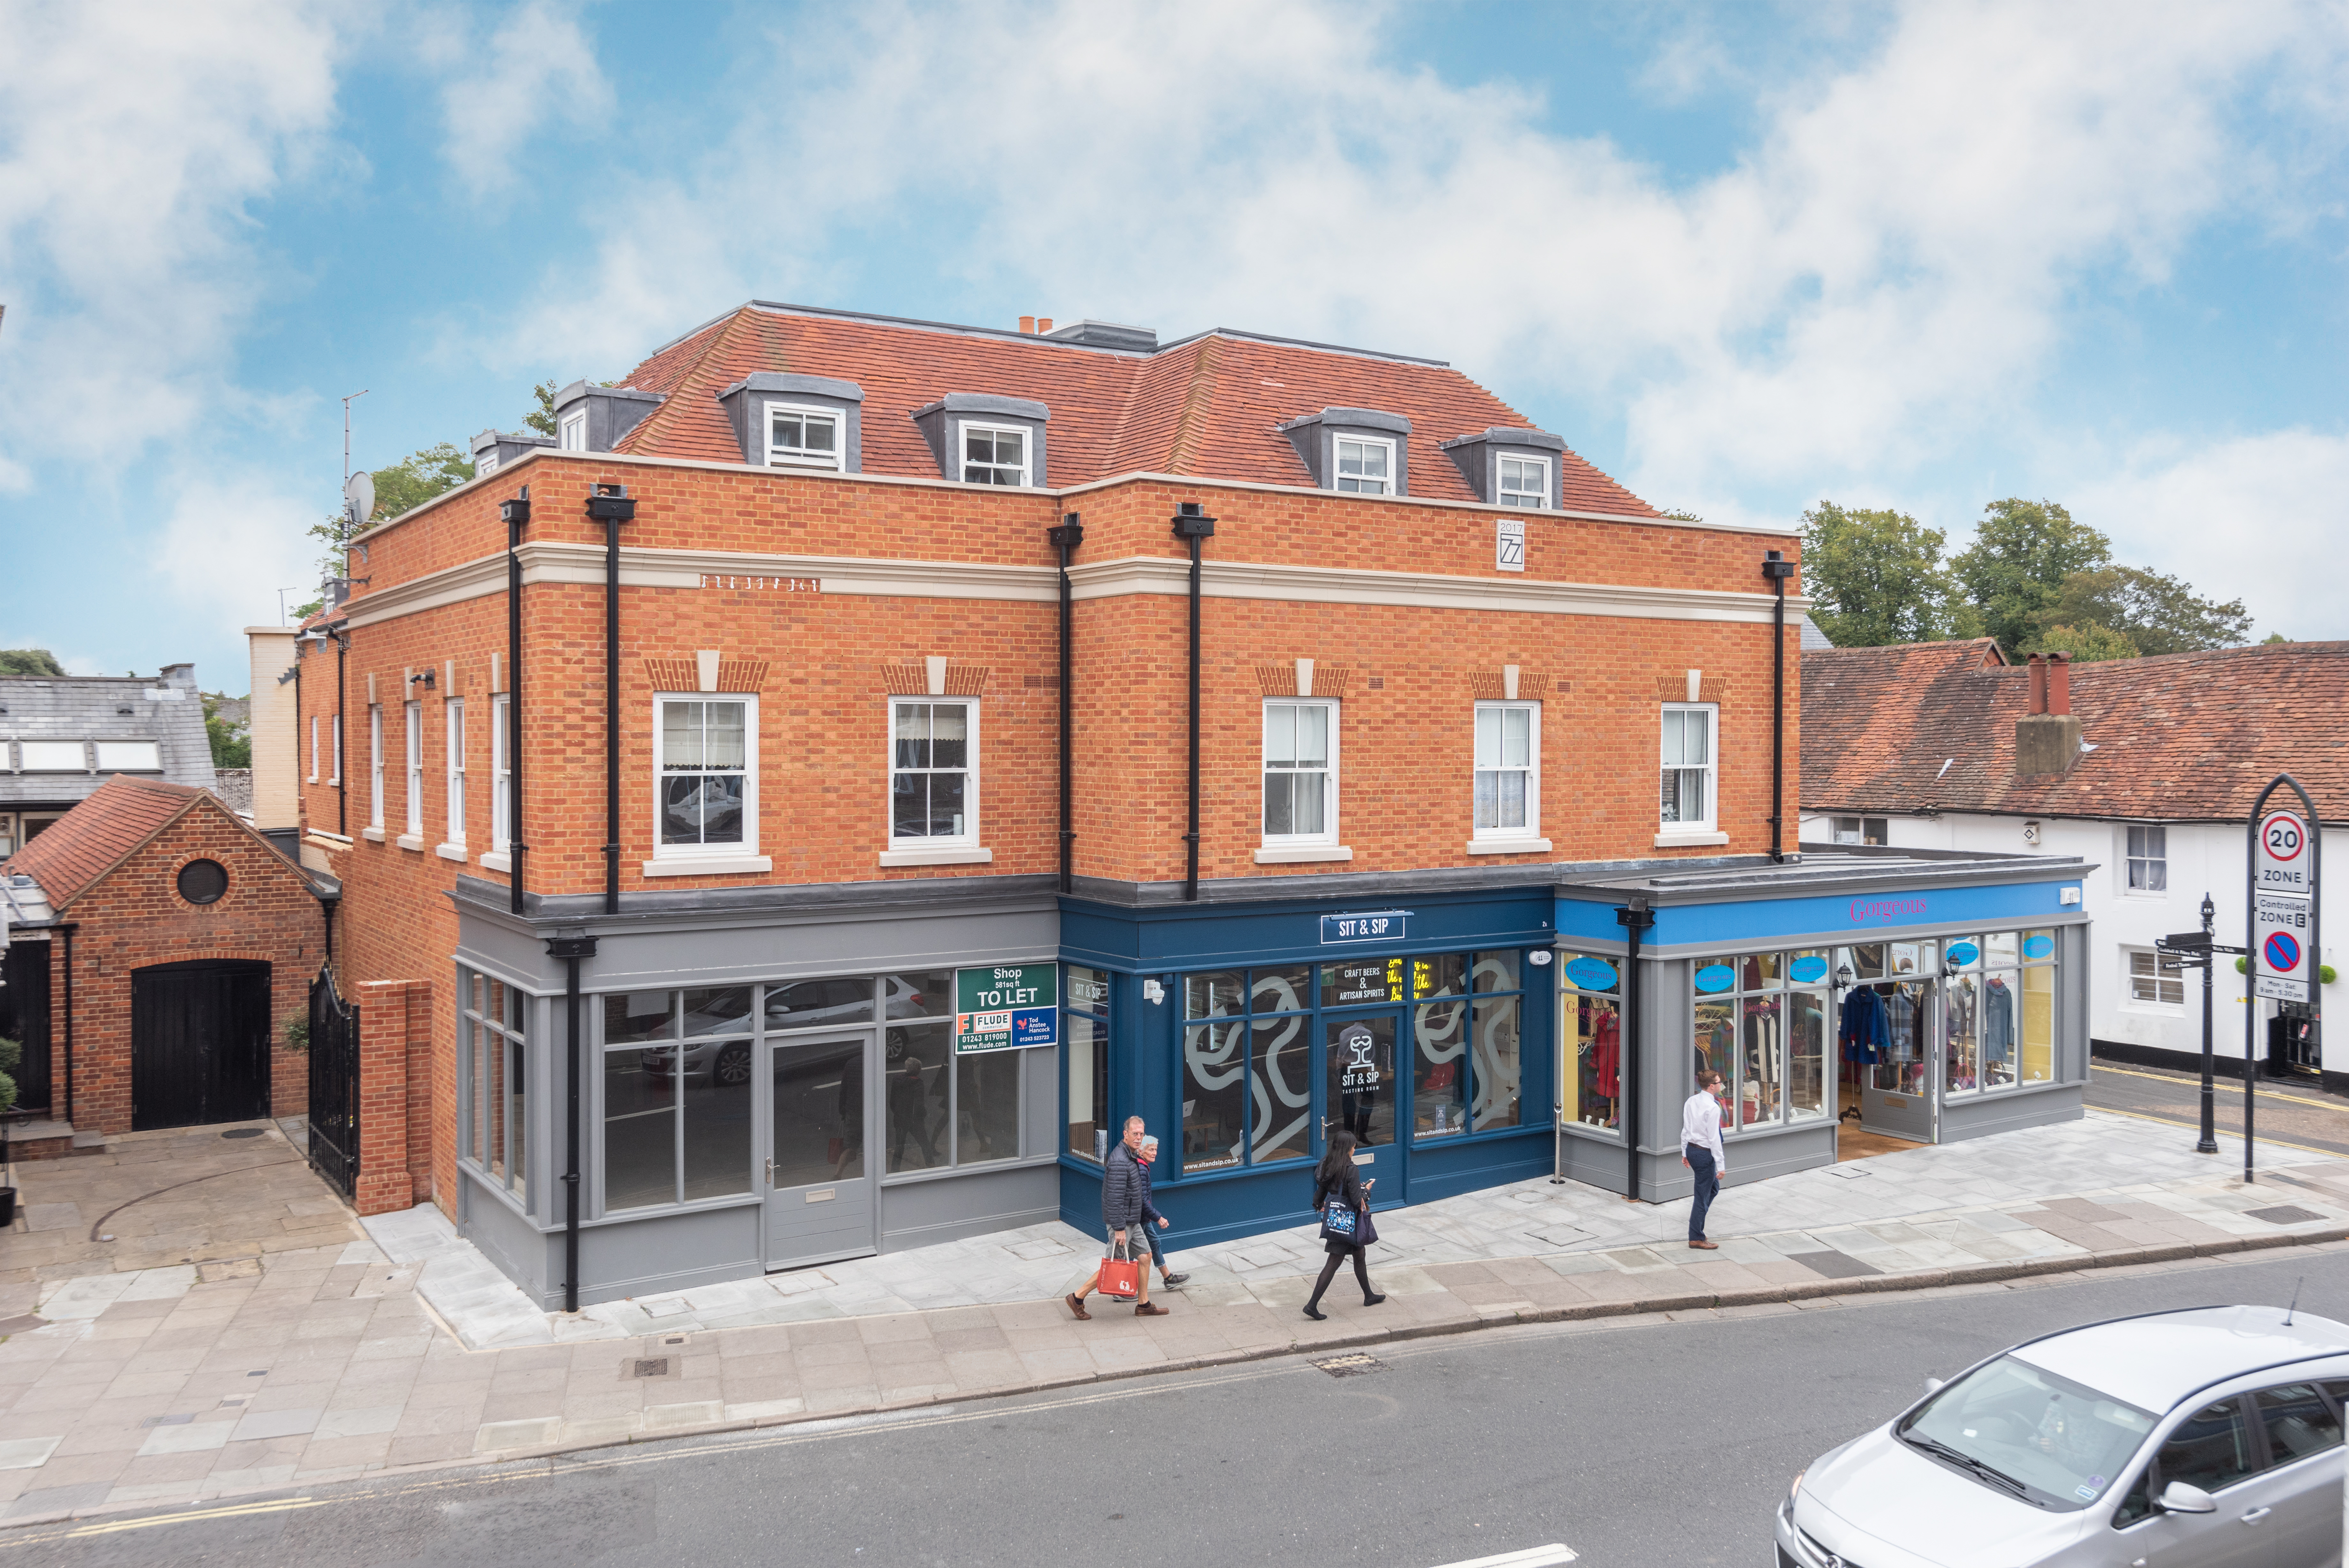 Investment Sale Completed - 2 Northgate, Chichester